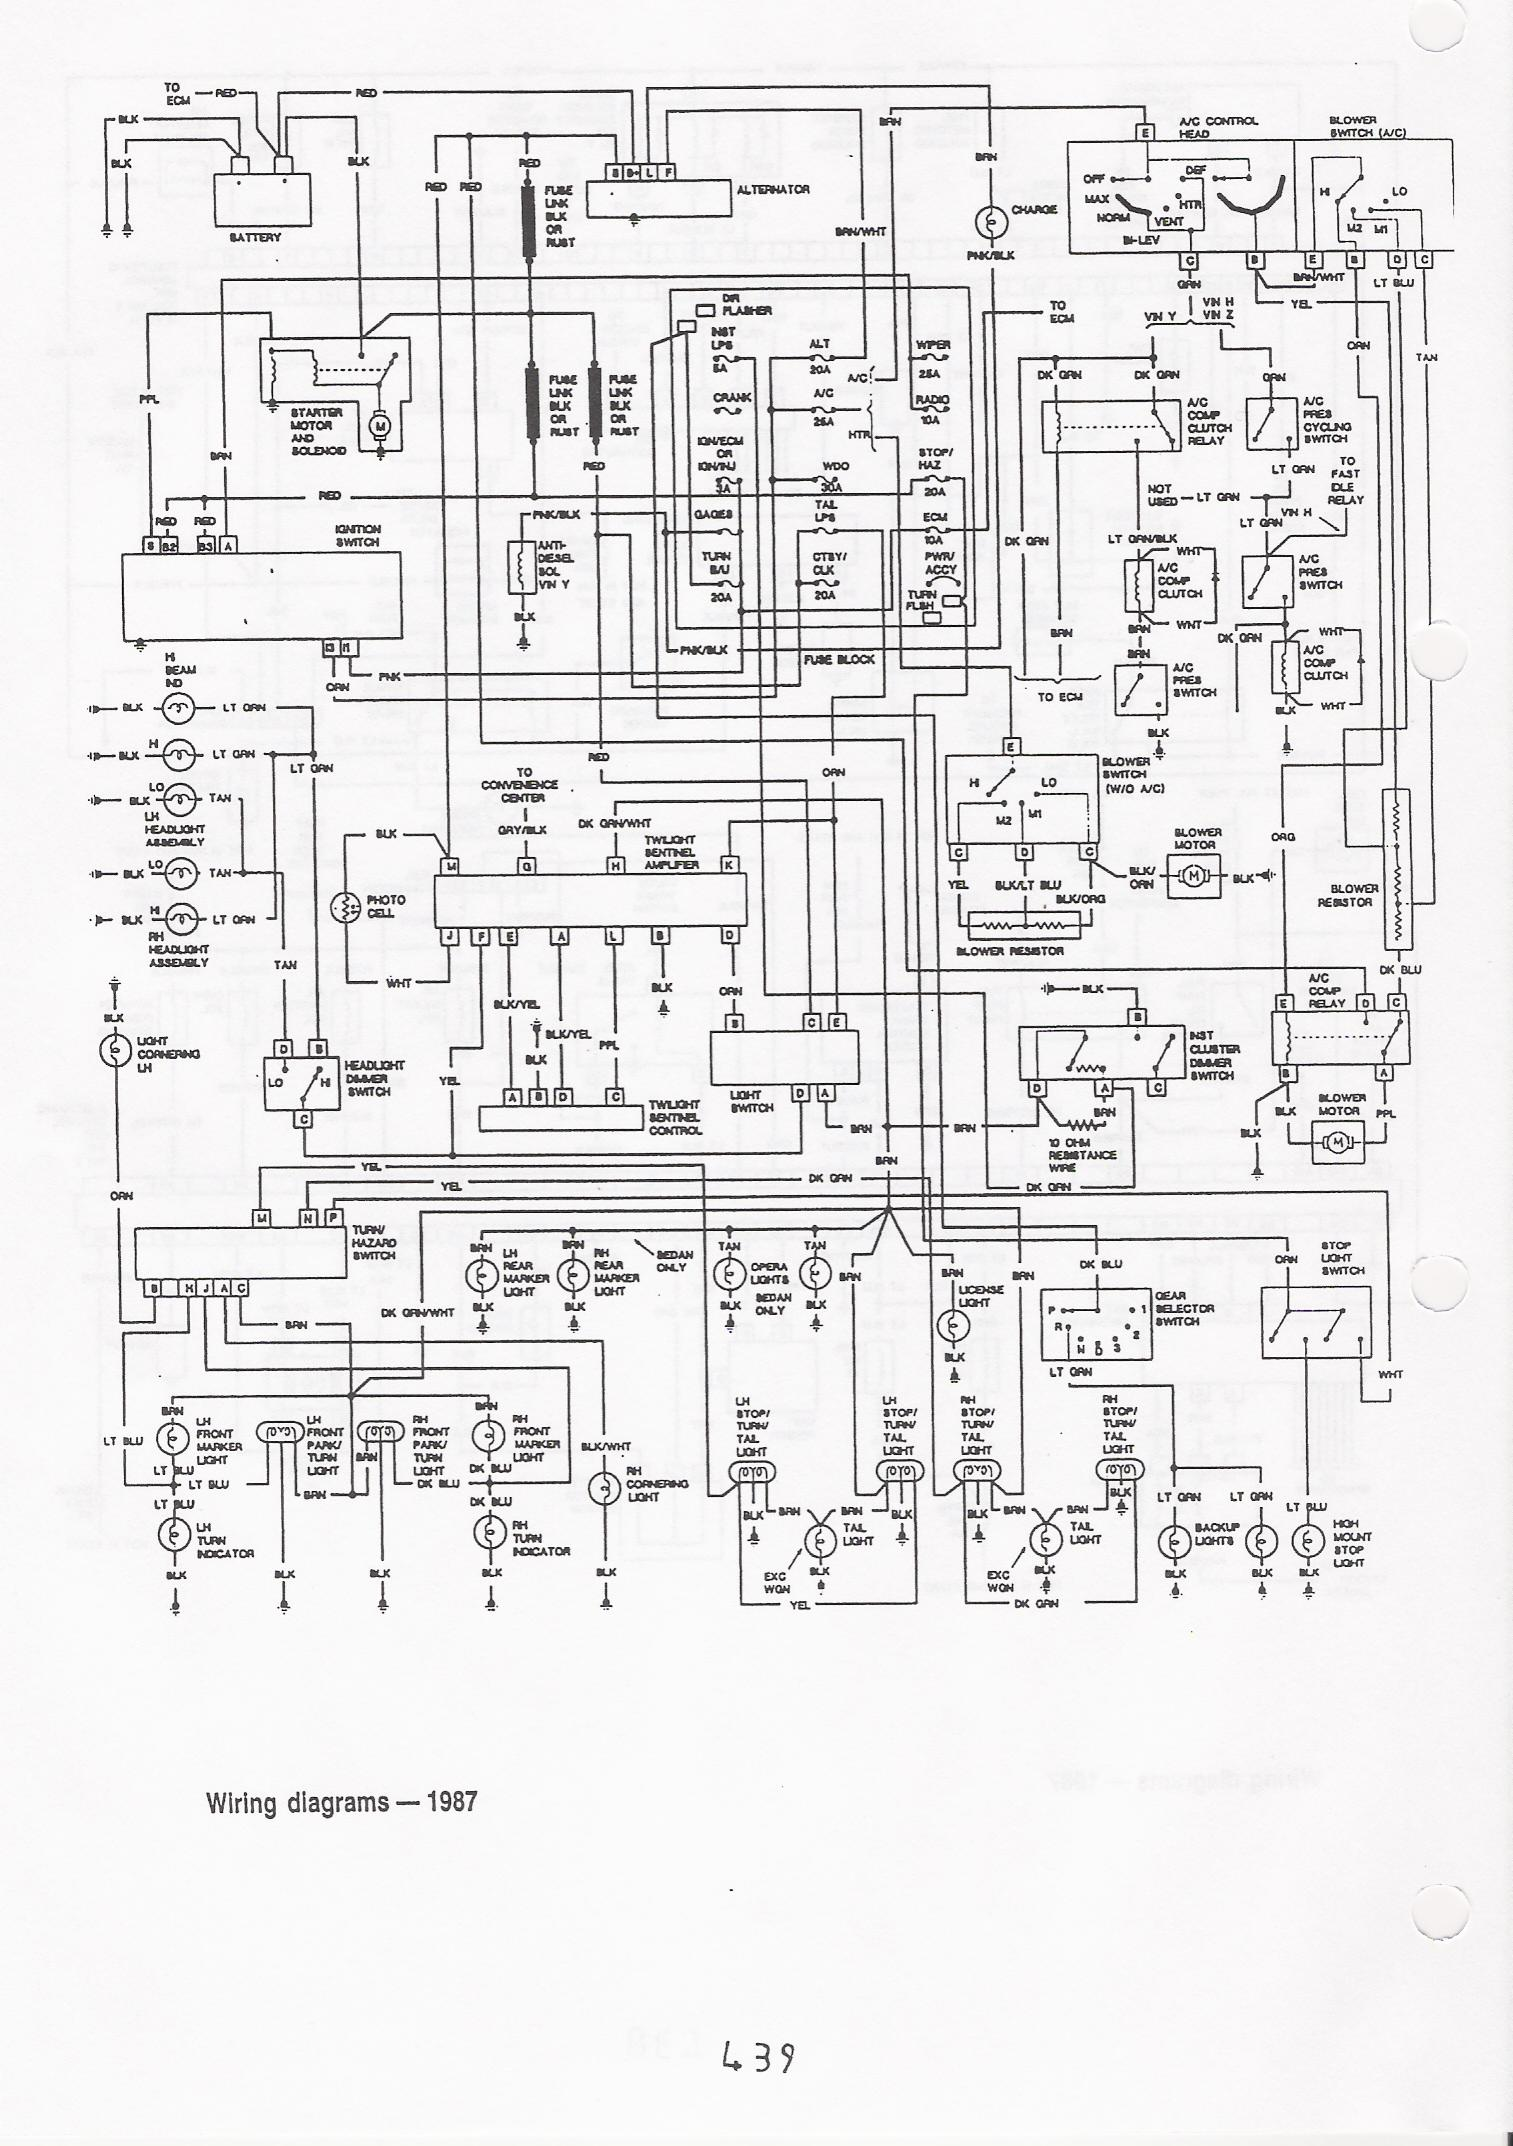 87 camaro alternator wiring diagram